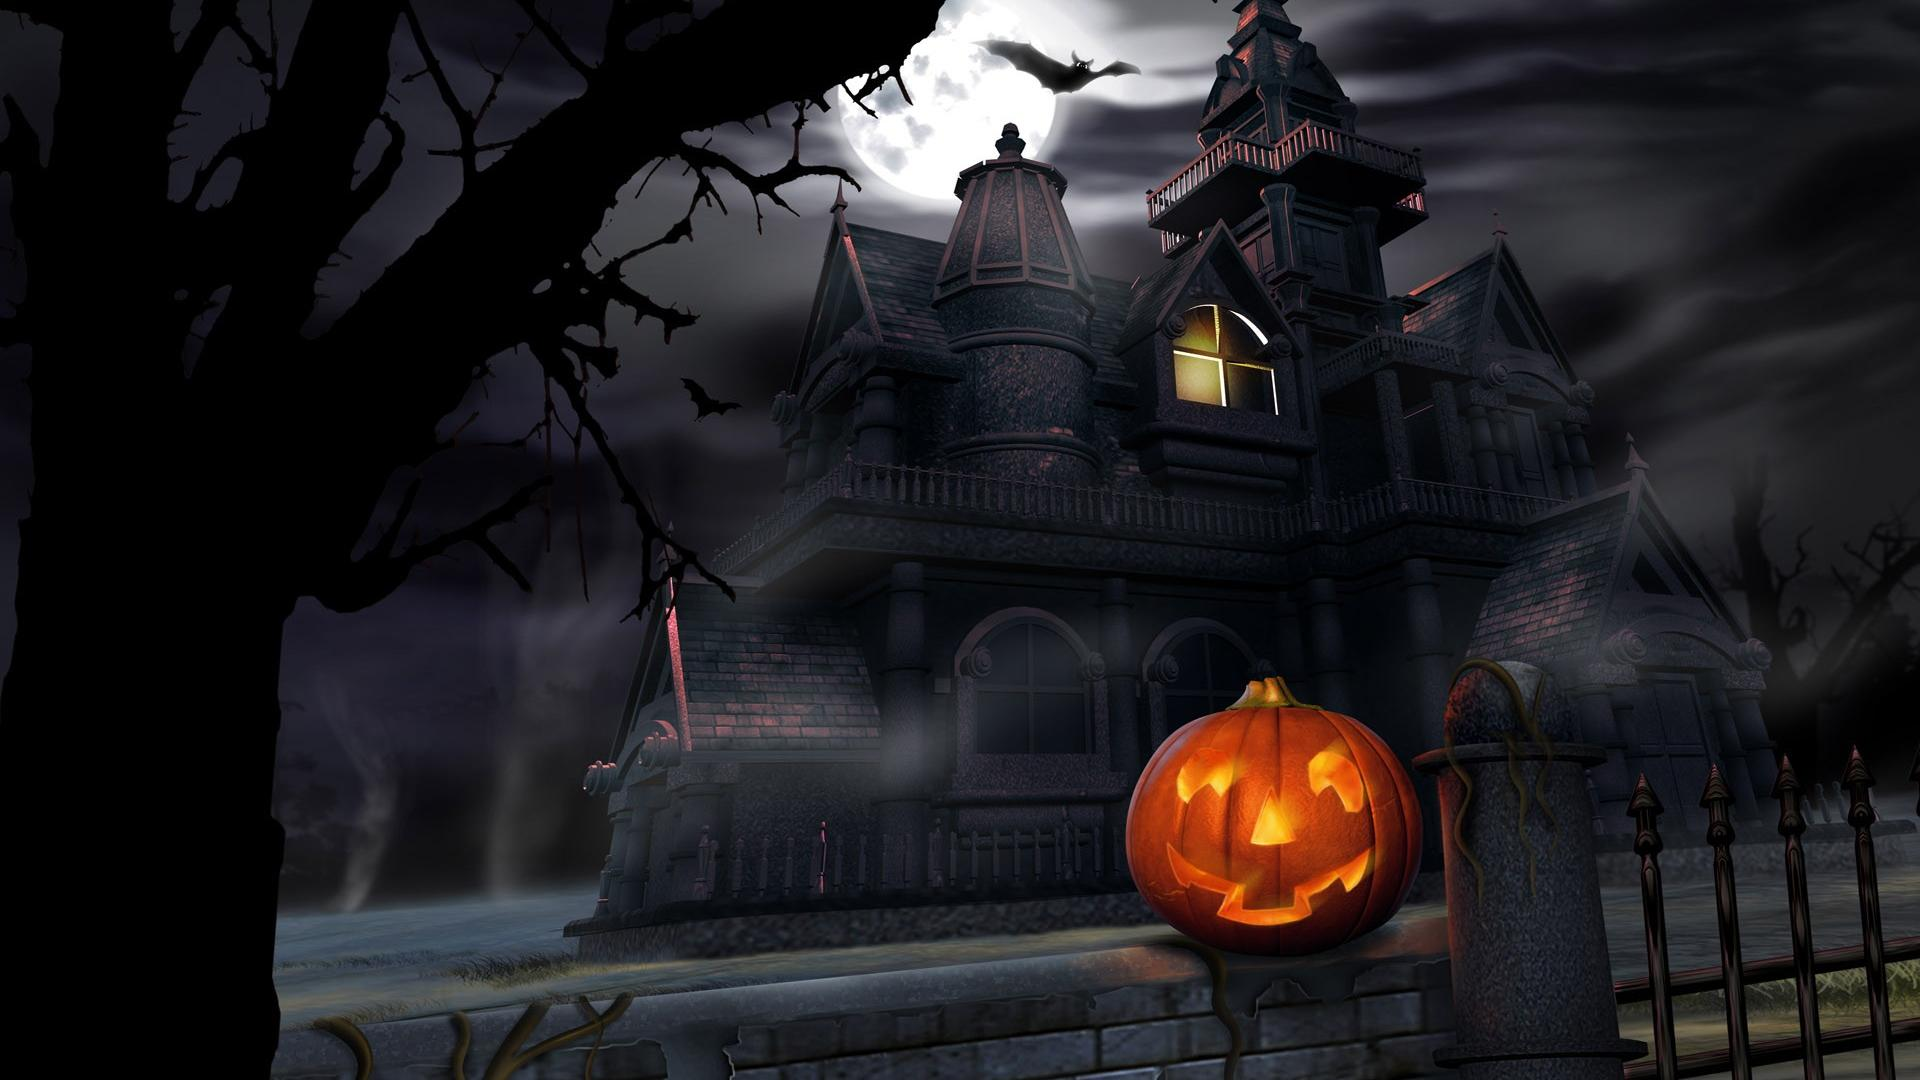 Cool Desktop Backgrounds Halloween – Free wallpaper download